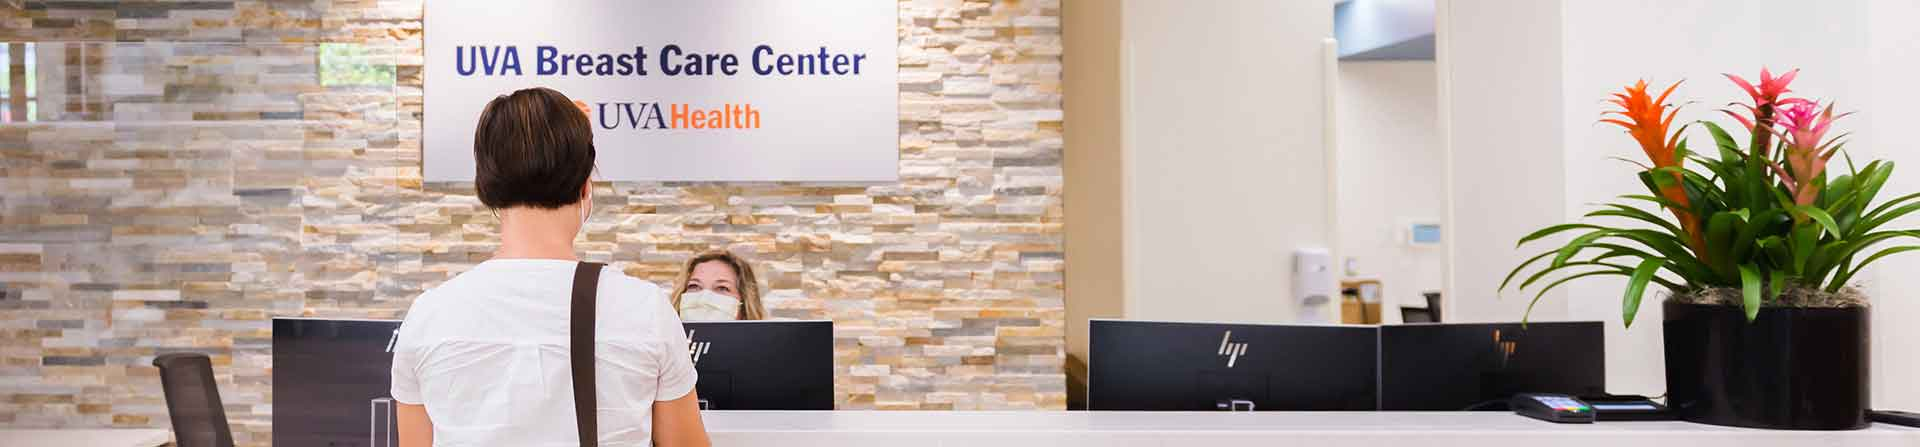 patient checks in for breast cancer care at the welcome desk